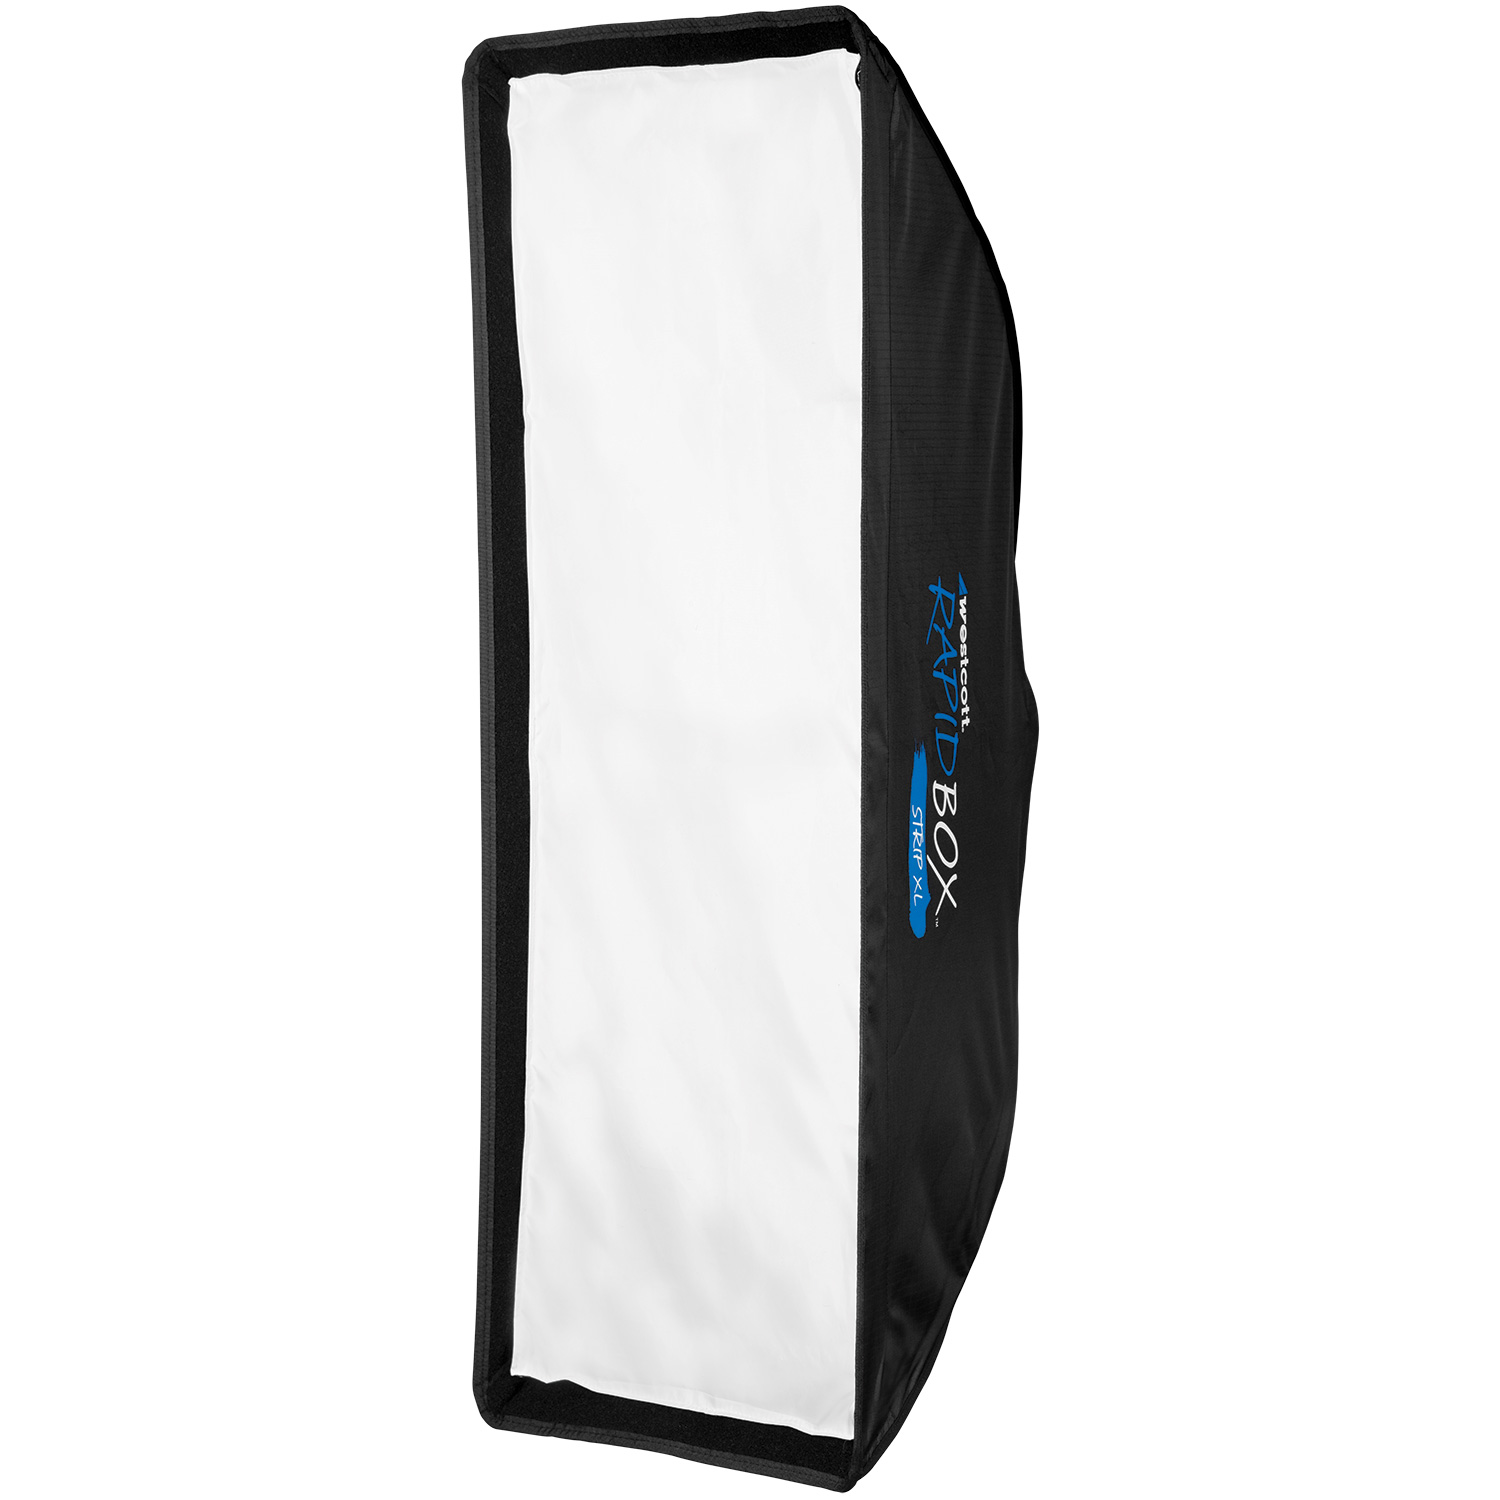 Rapid Box Strip XL Softbox (12-in. x 36-in., Elinchrom Mount)